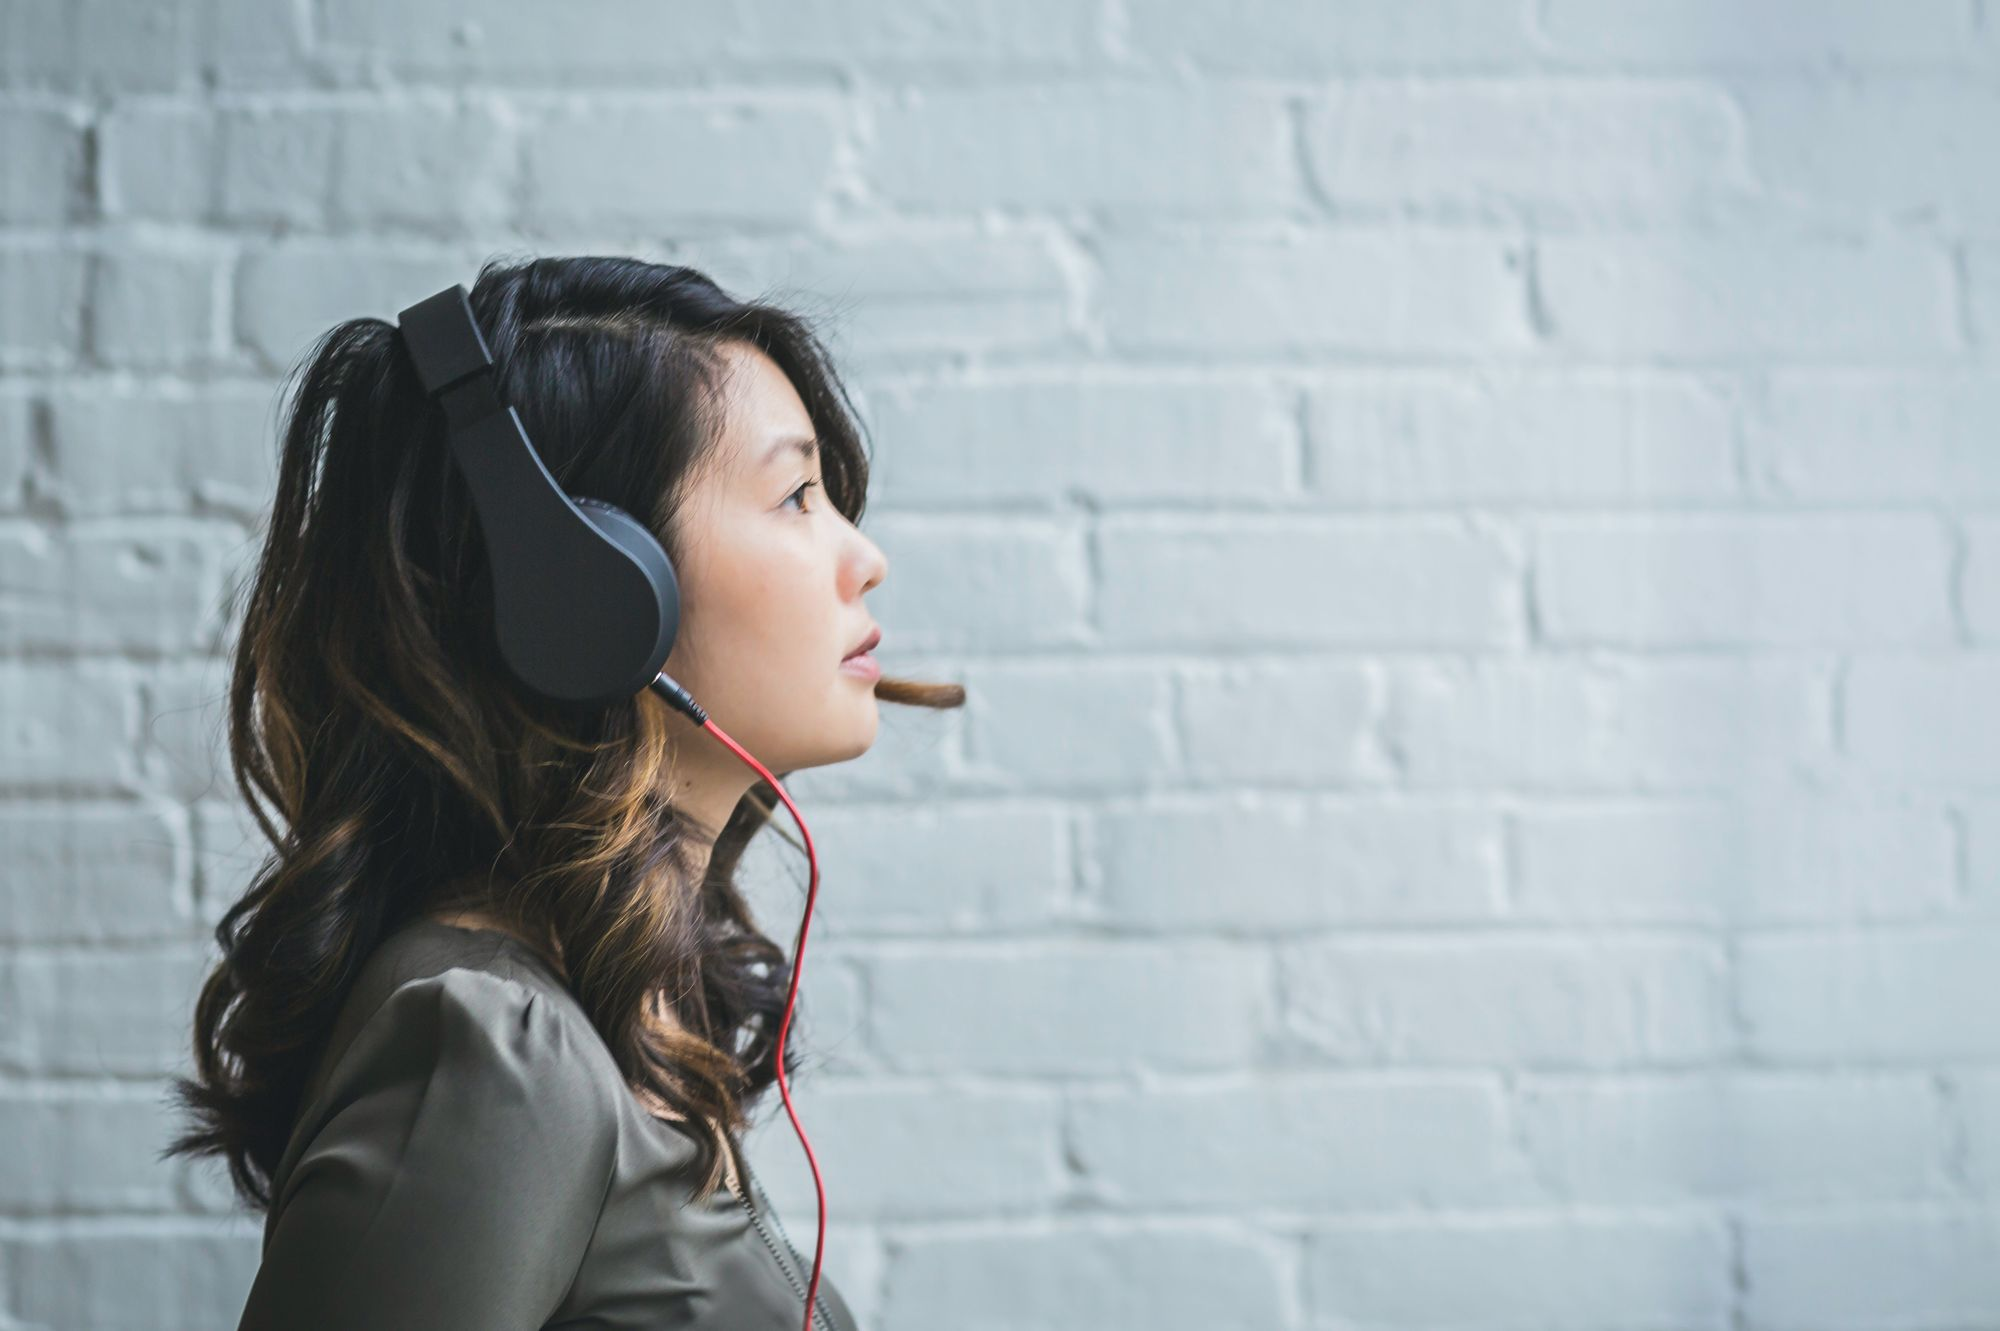 Lady listening to headphones to learn a language